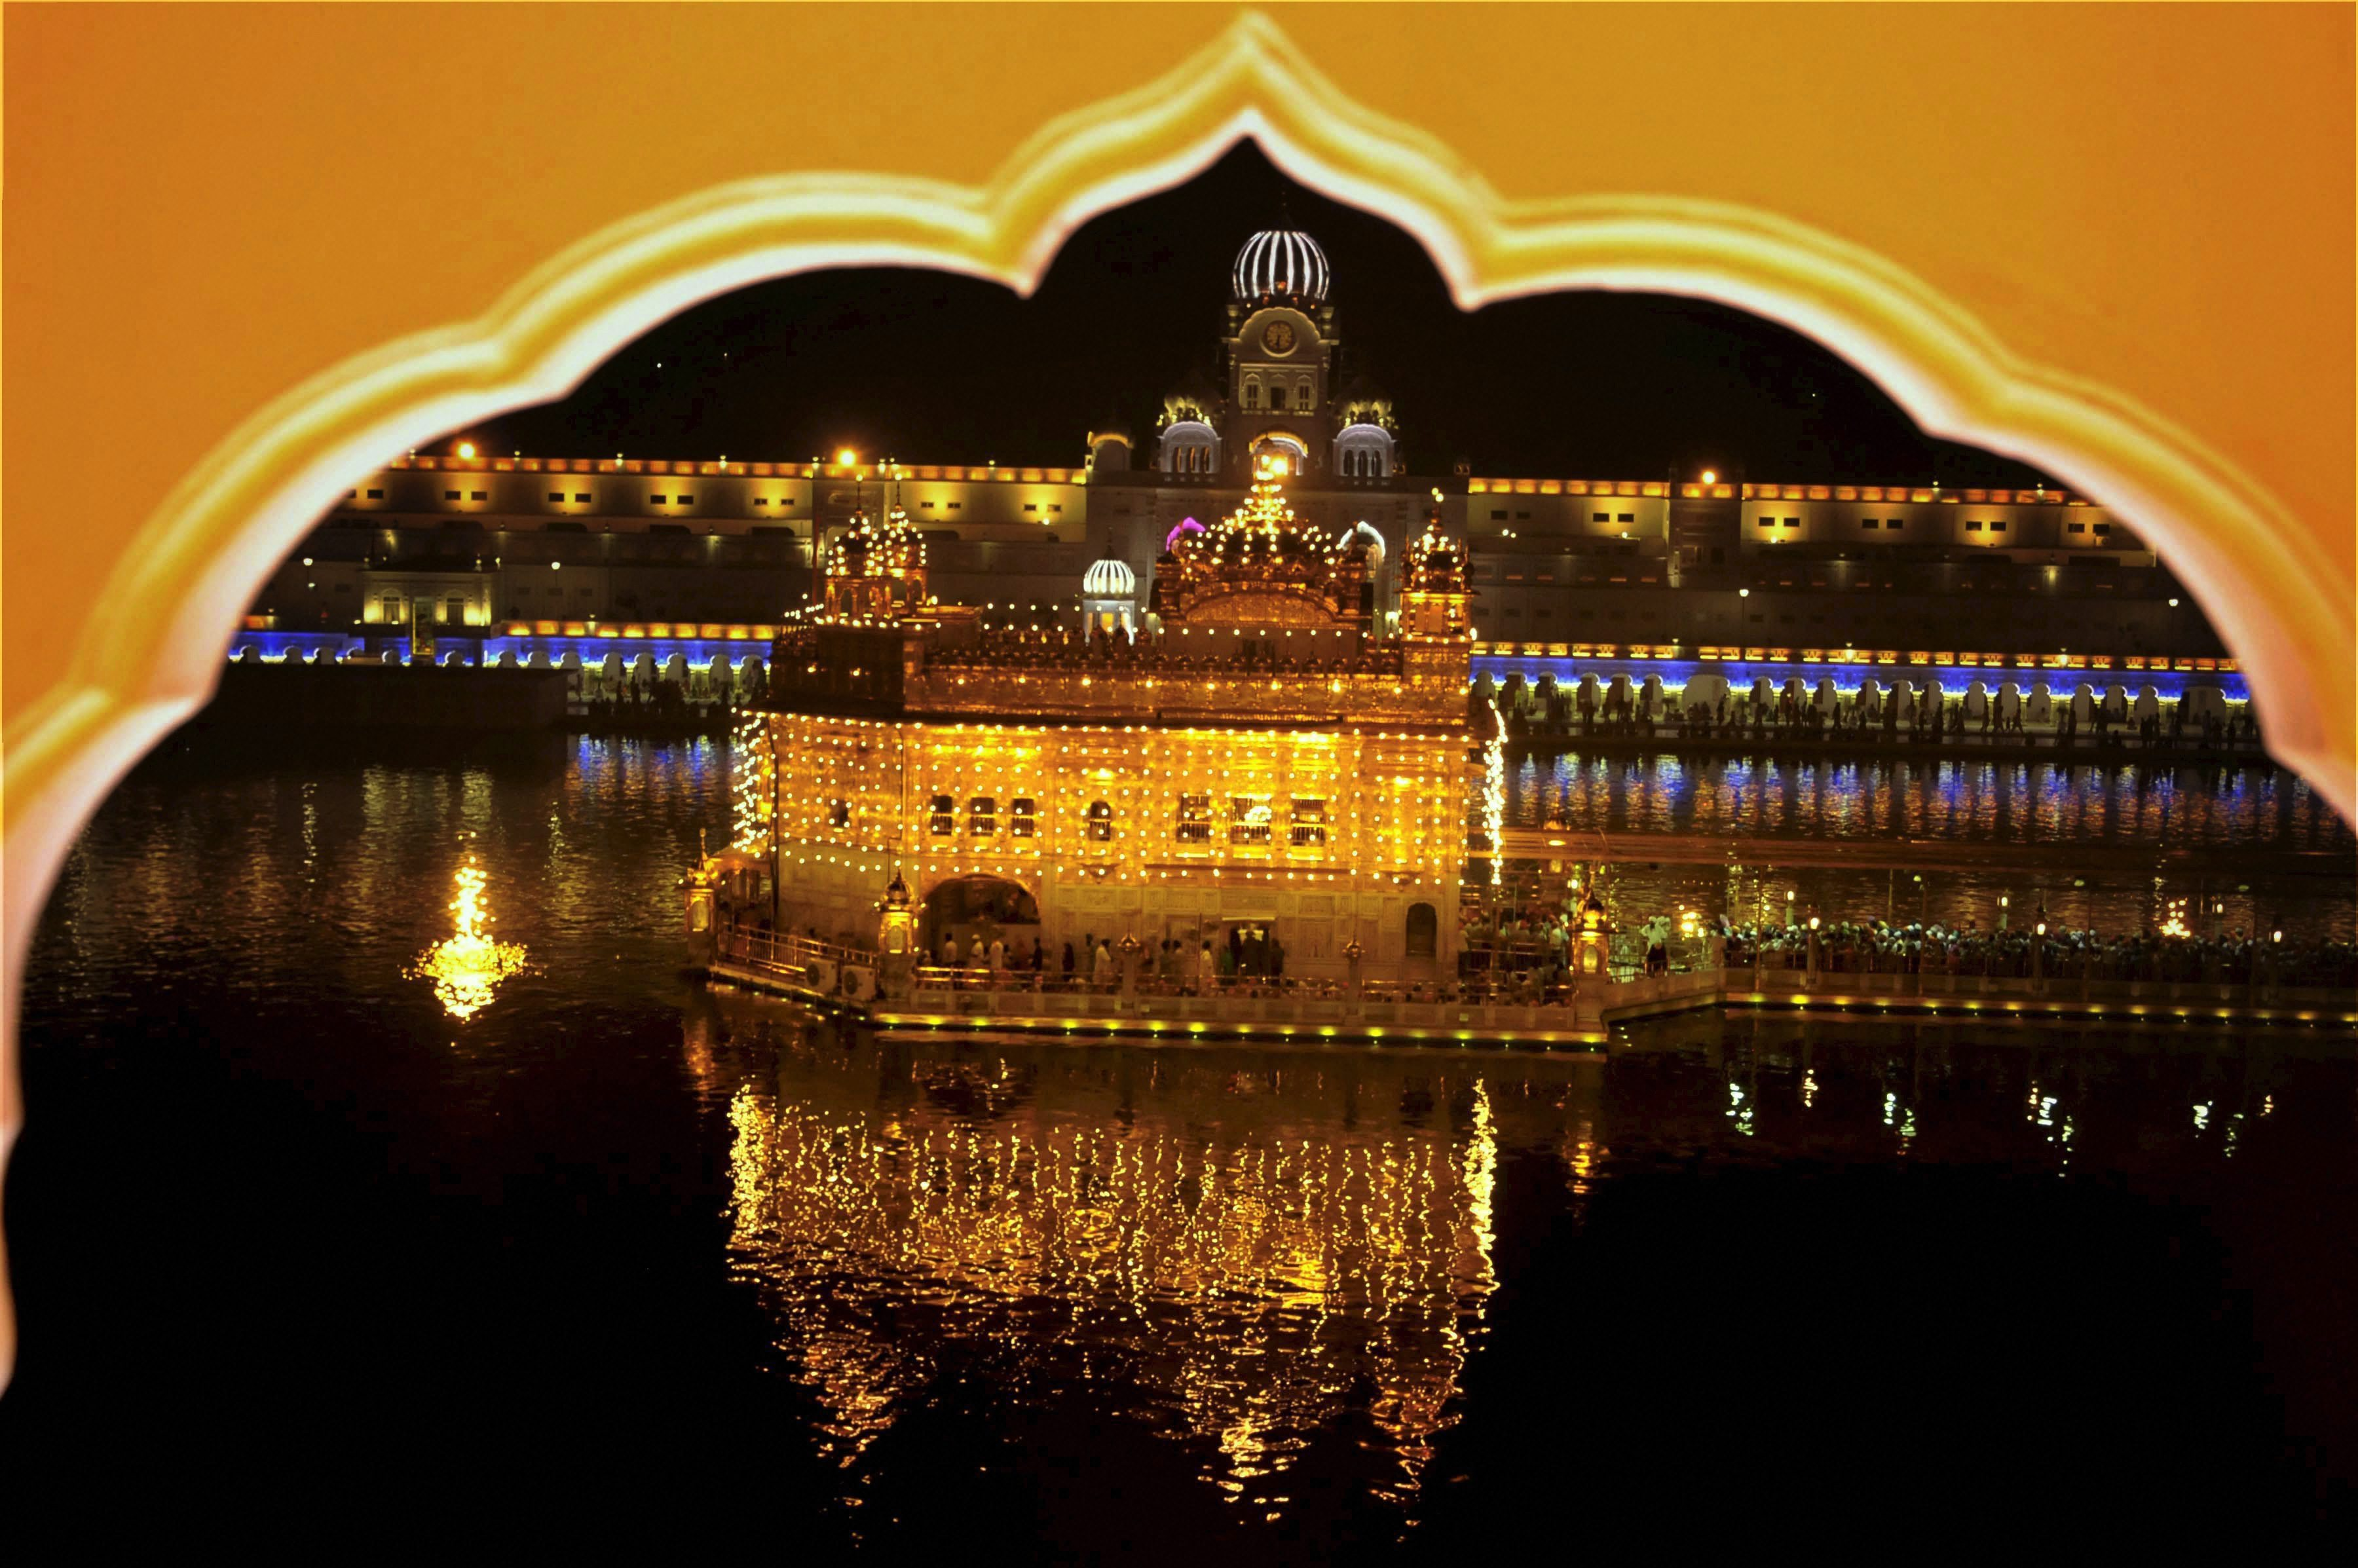 A view of the illuminated Golden Temple in Amritsar. (Credit: PTI)